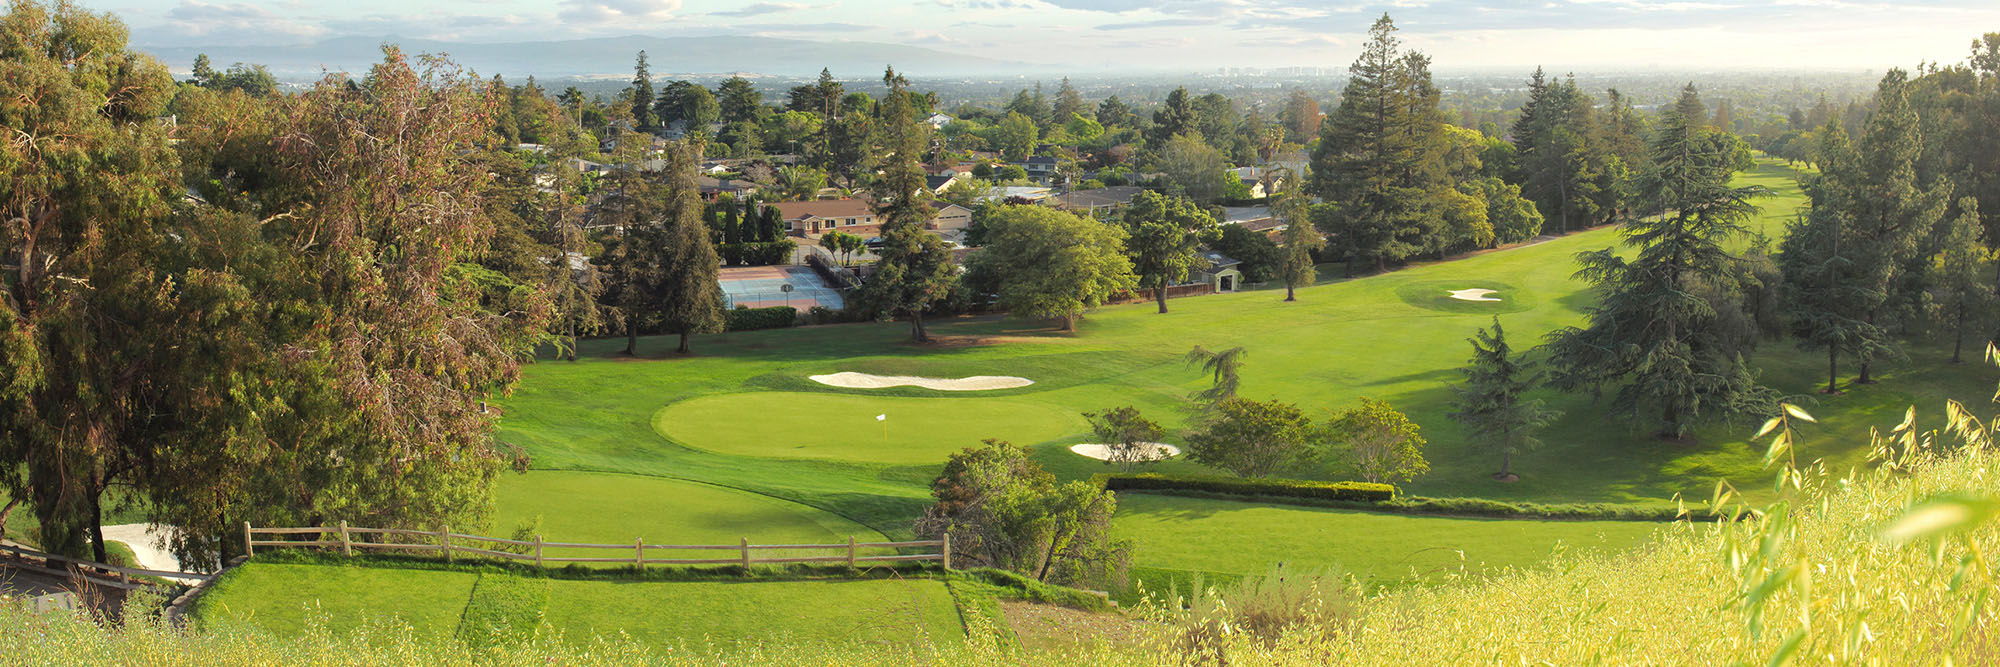 Golf Course Image - San Jose Country Club No. 16